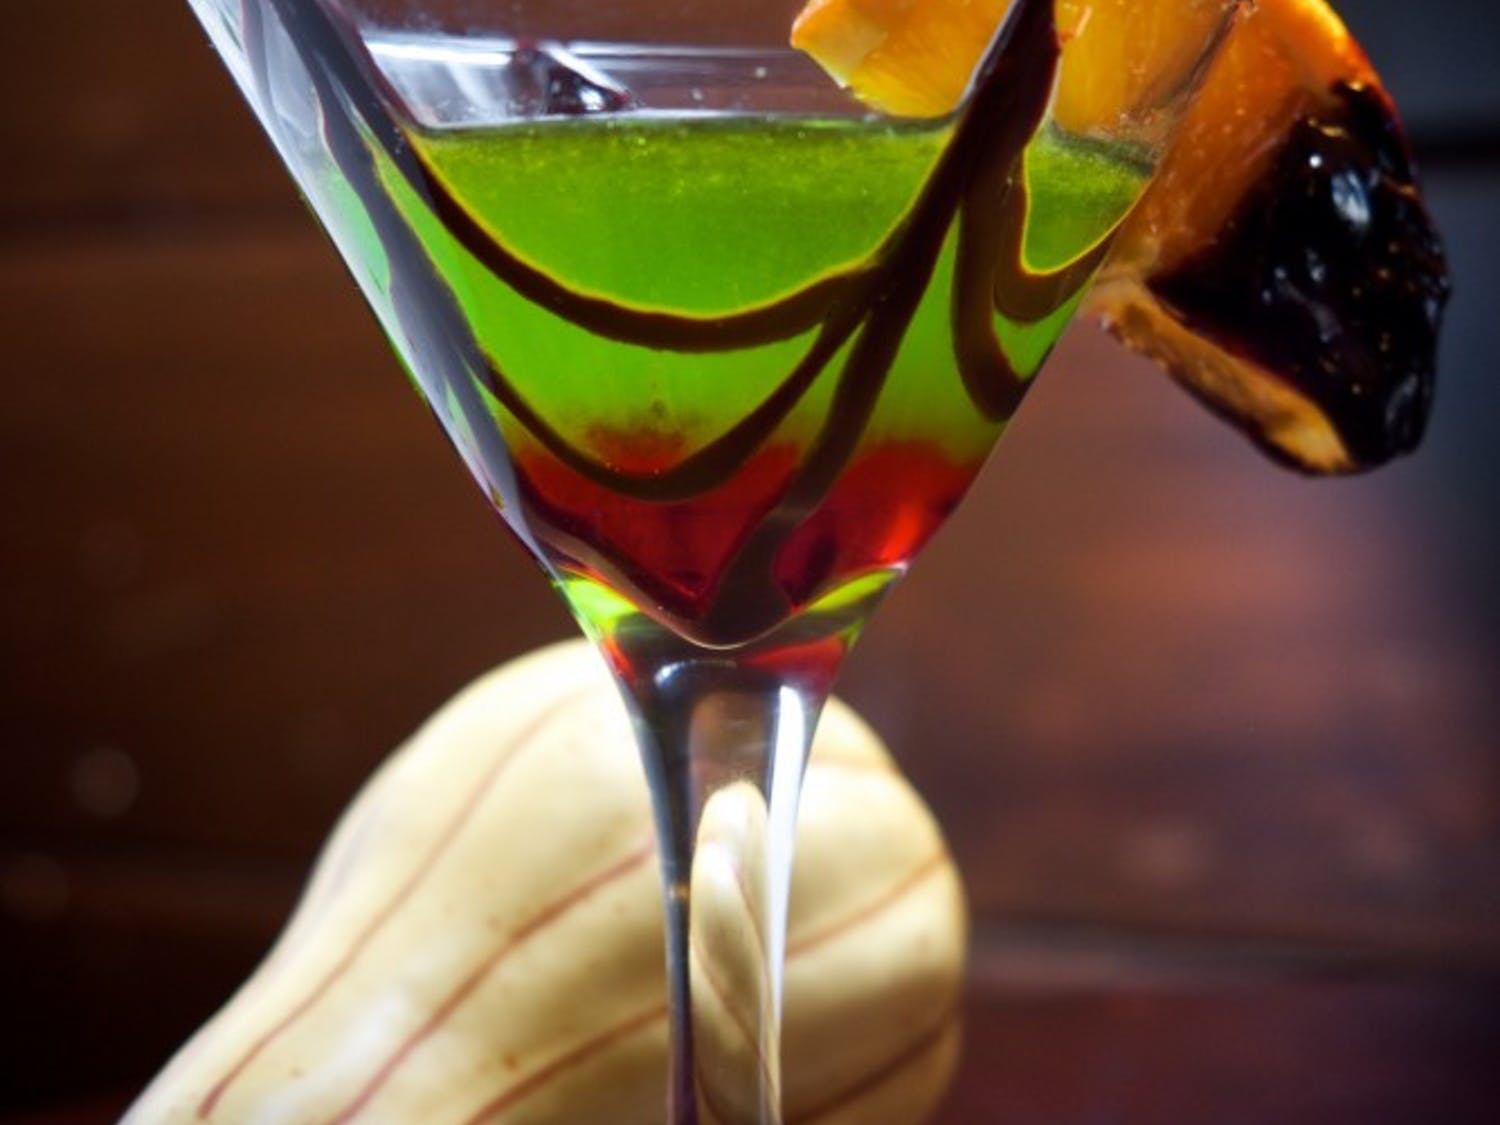 You're bound to get thirsty while party hopping this weekend. Shots? Cocktails? Beer? The Spectrum compiled a list of some sweet and colorful cocktails to aid any outing and setting this Halloween weekend.